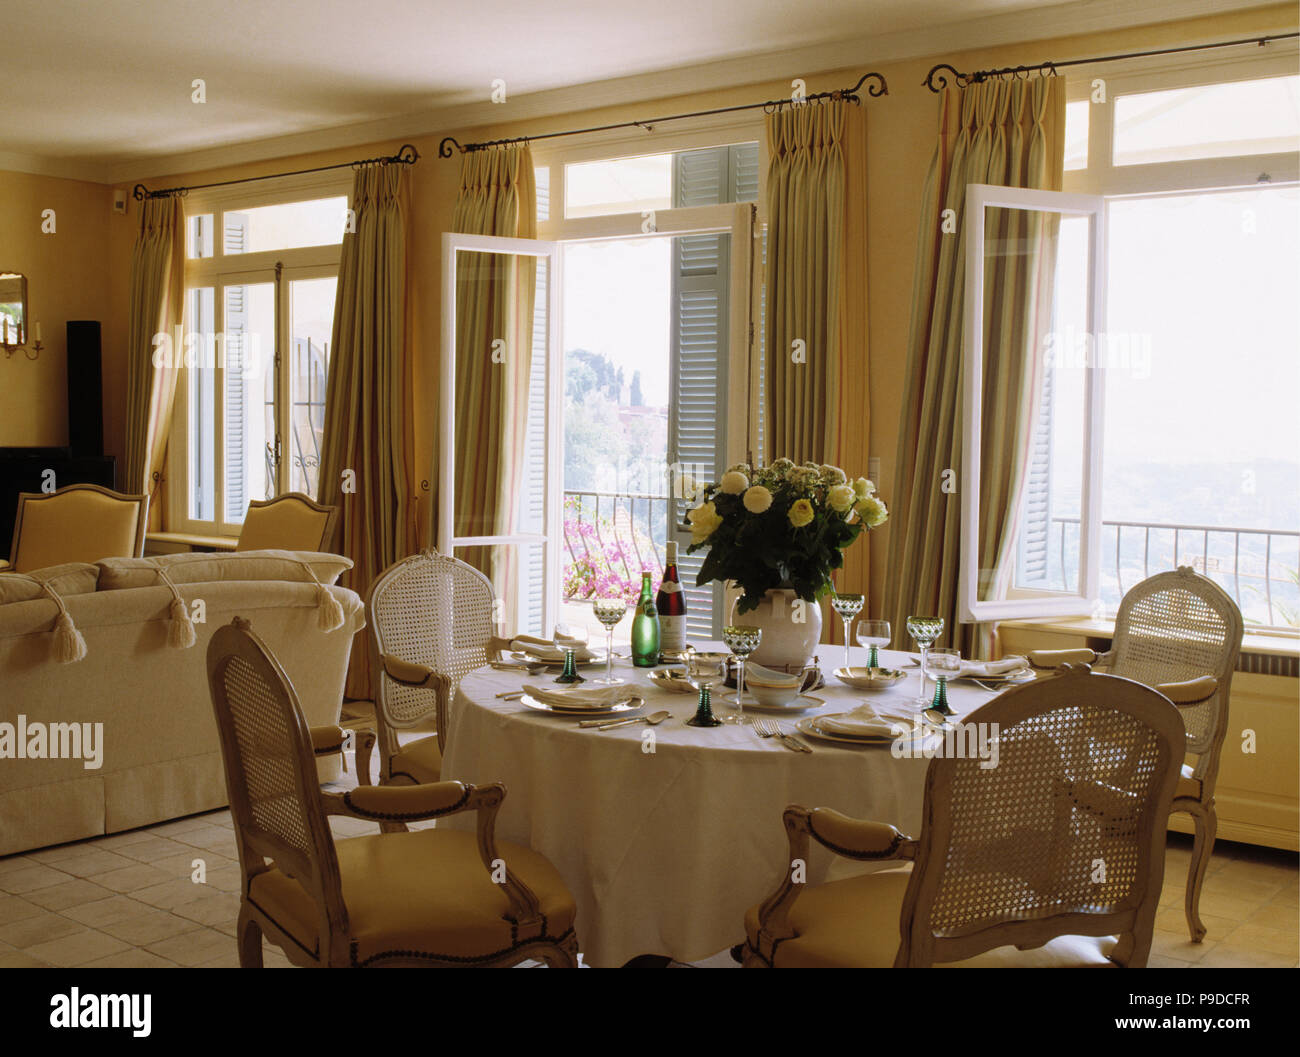 Antique Cane Back Chairs At Table With White Cloth Set For Lunch In Front Of Windows In French Coastal Dining Room Stock Photo Alamy